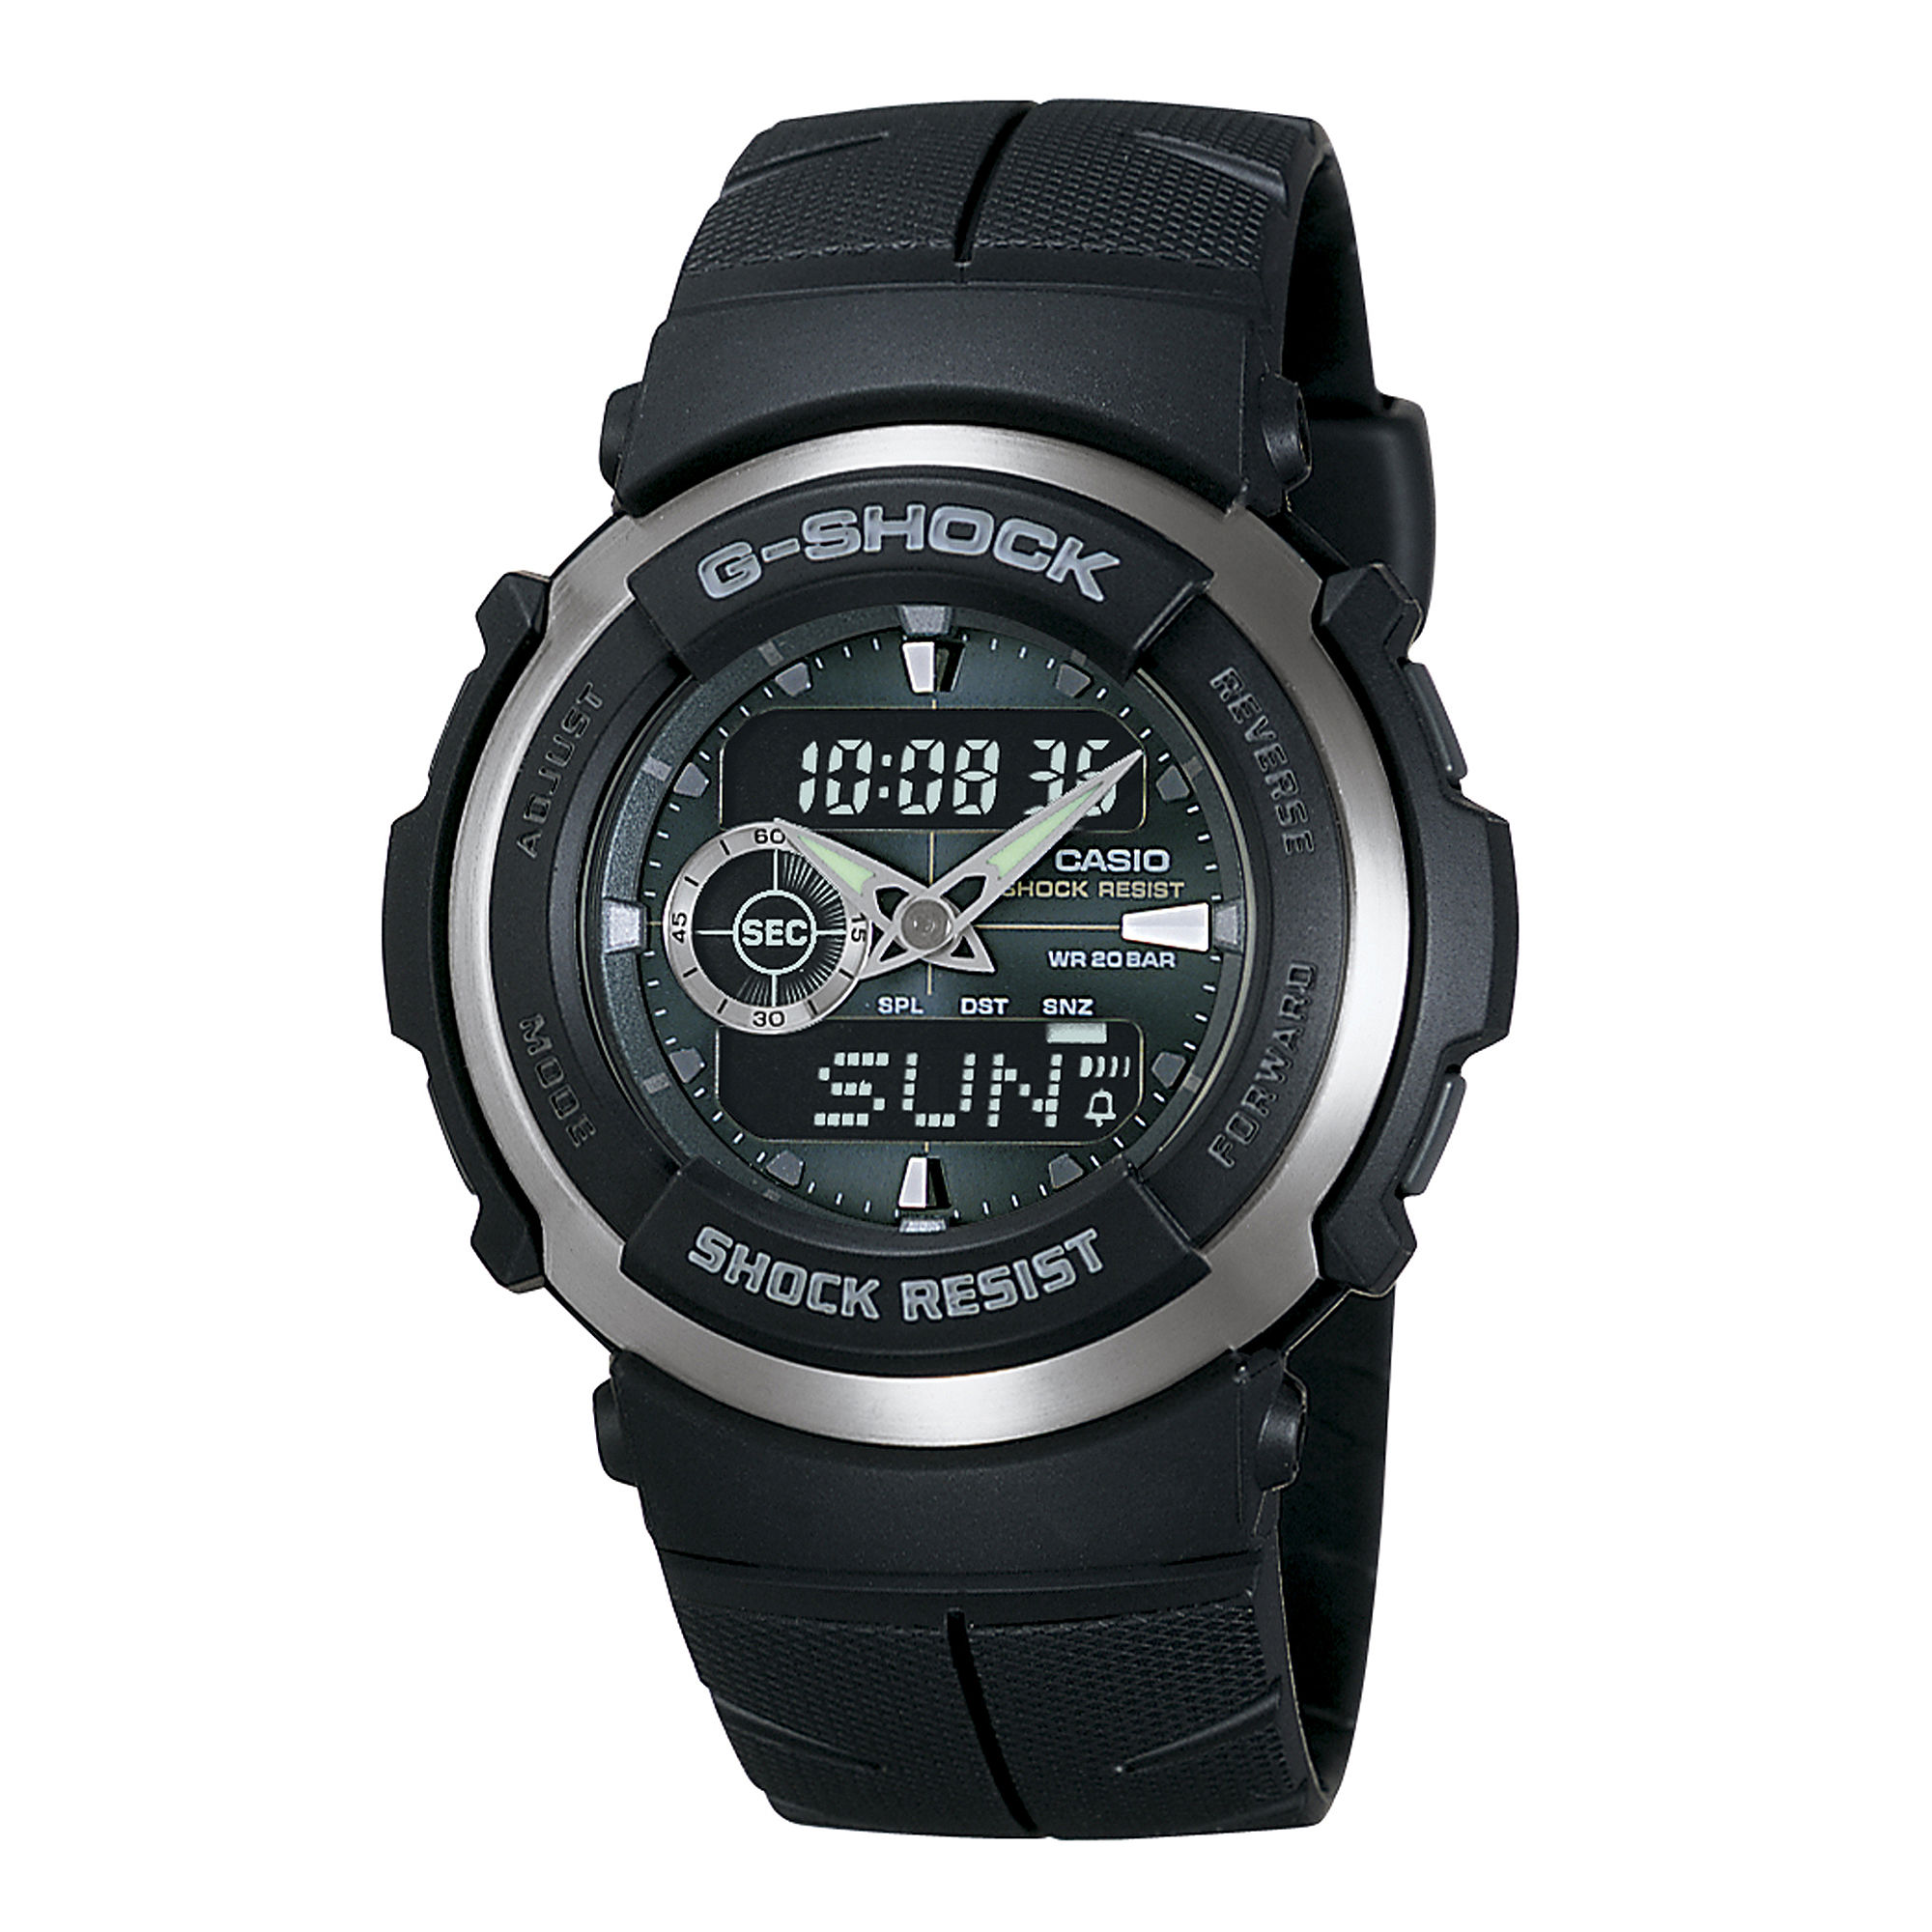 Casio G-Shock Street Rider Mens Analog/Digital Sport Watch G300-3AV